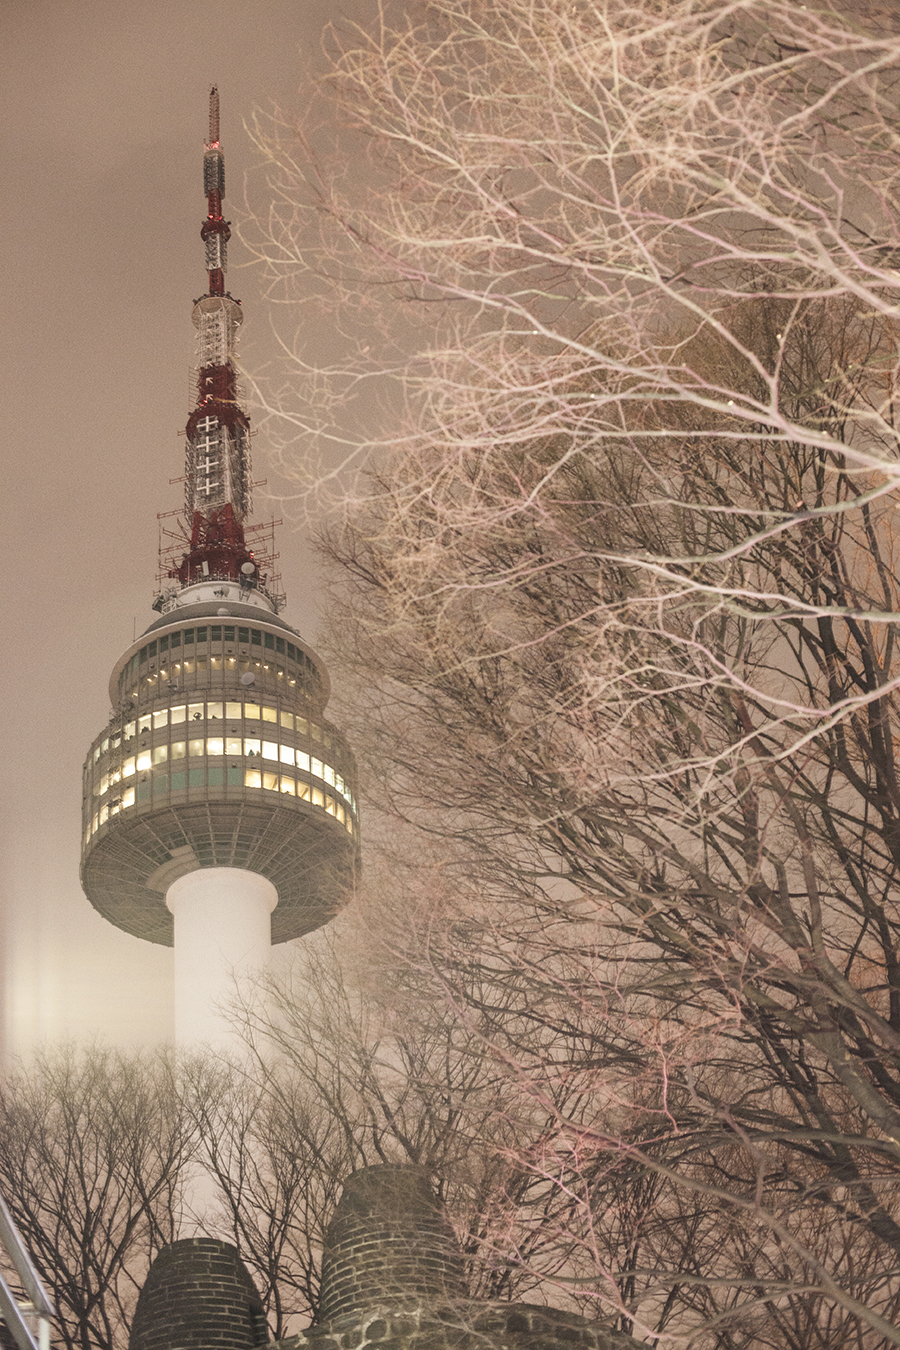 Namsan tower in pink lighting at night.